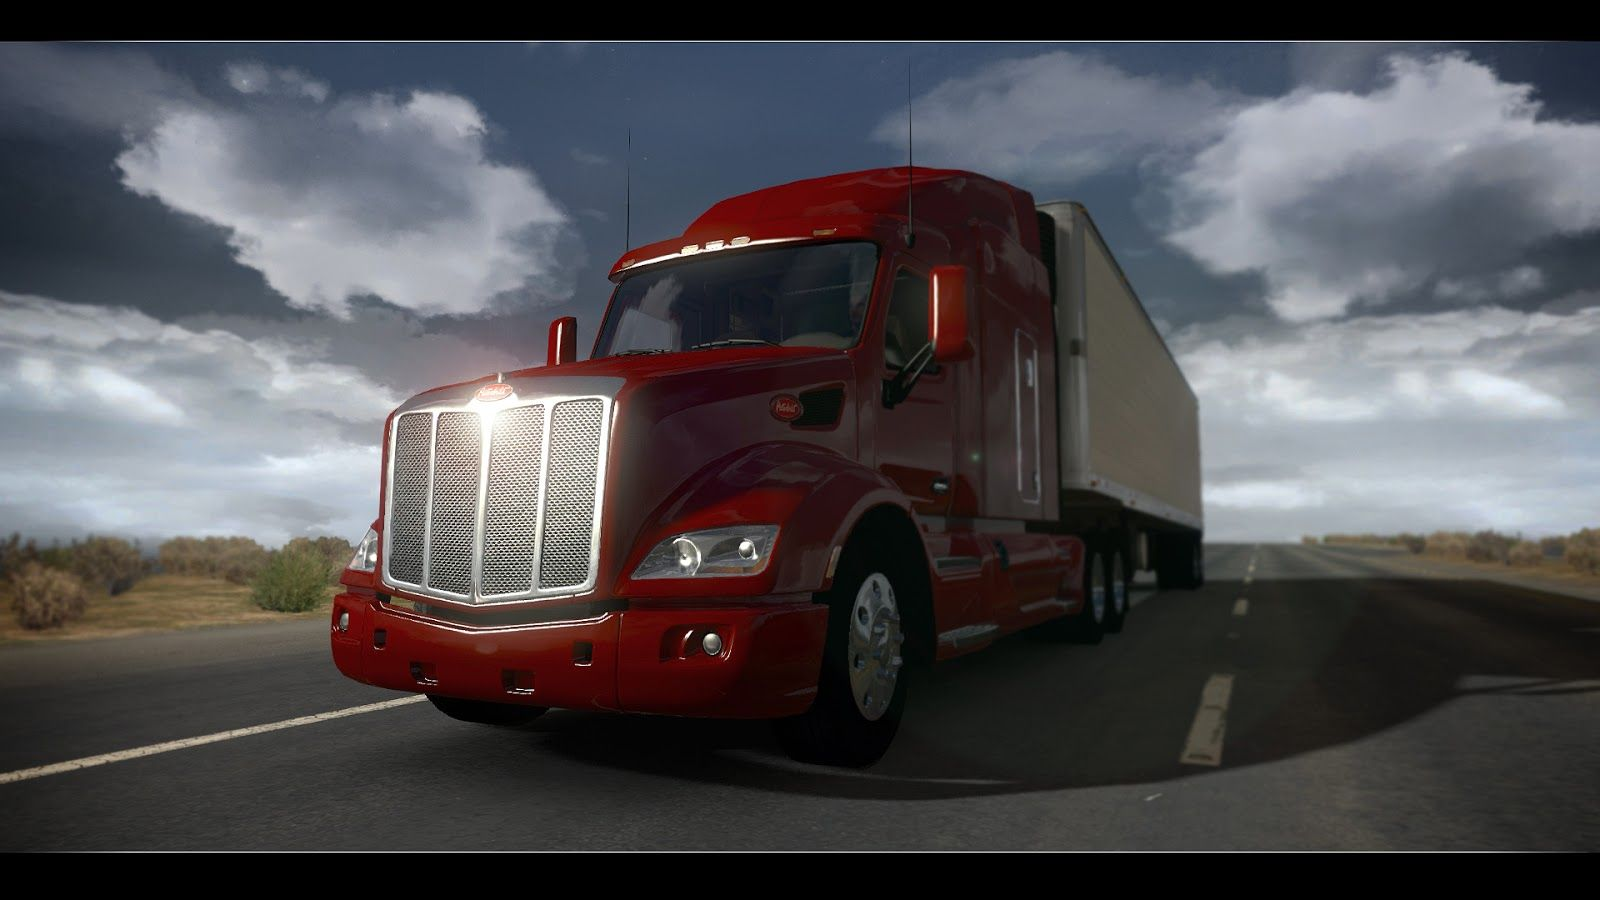 Truck Simulator 3D V1.1 Apk – Download Here.